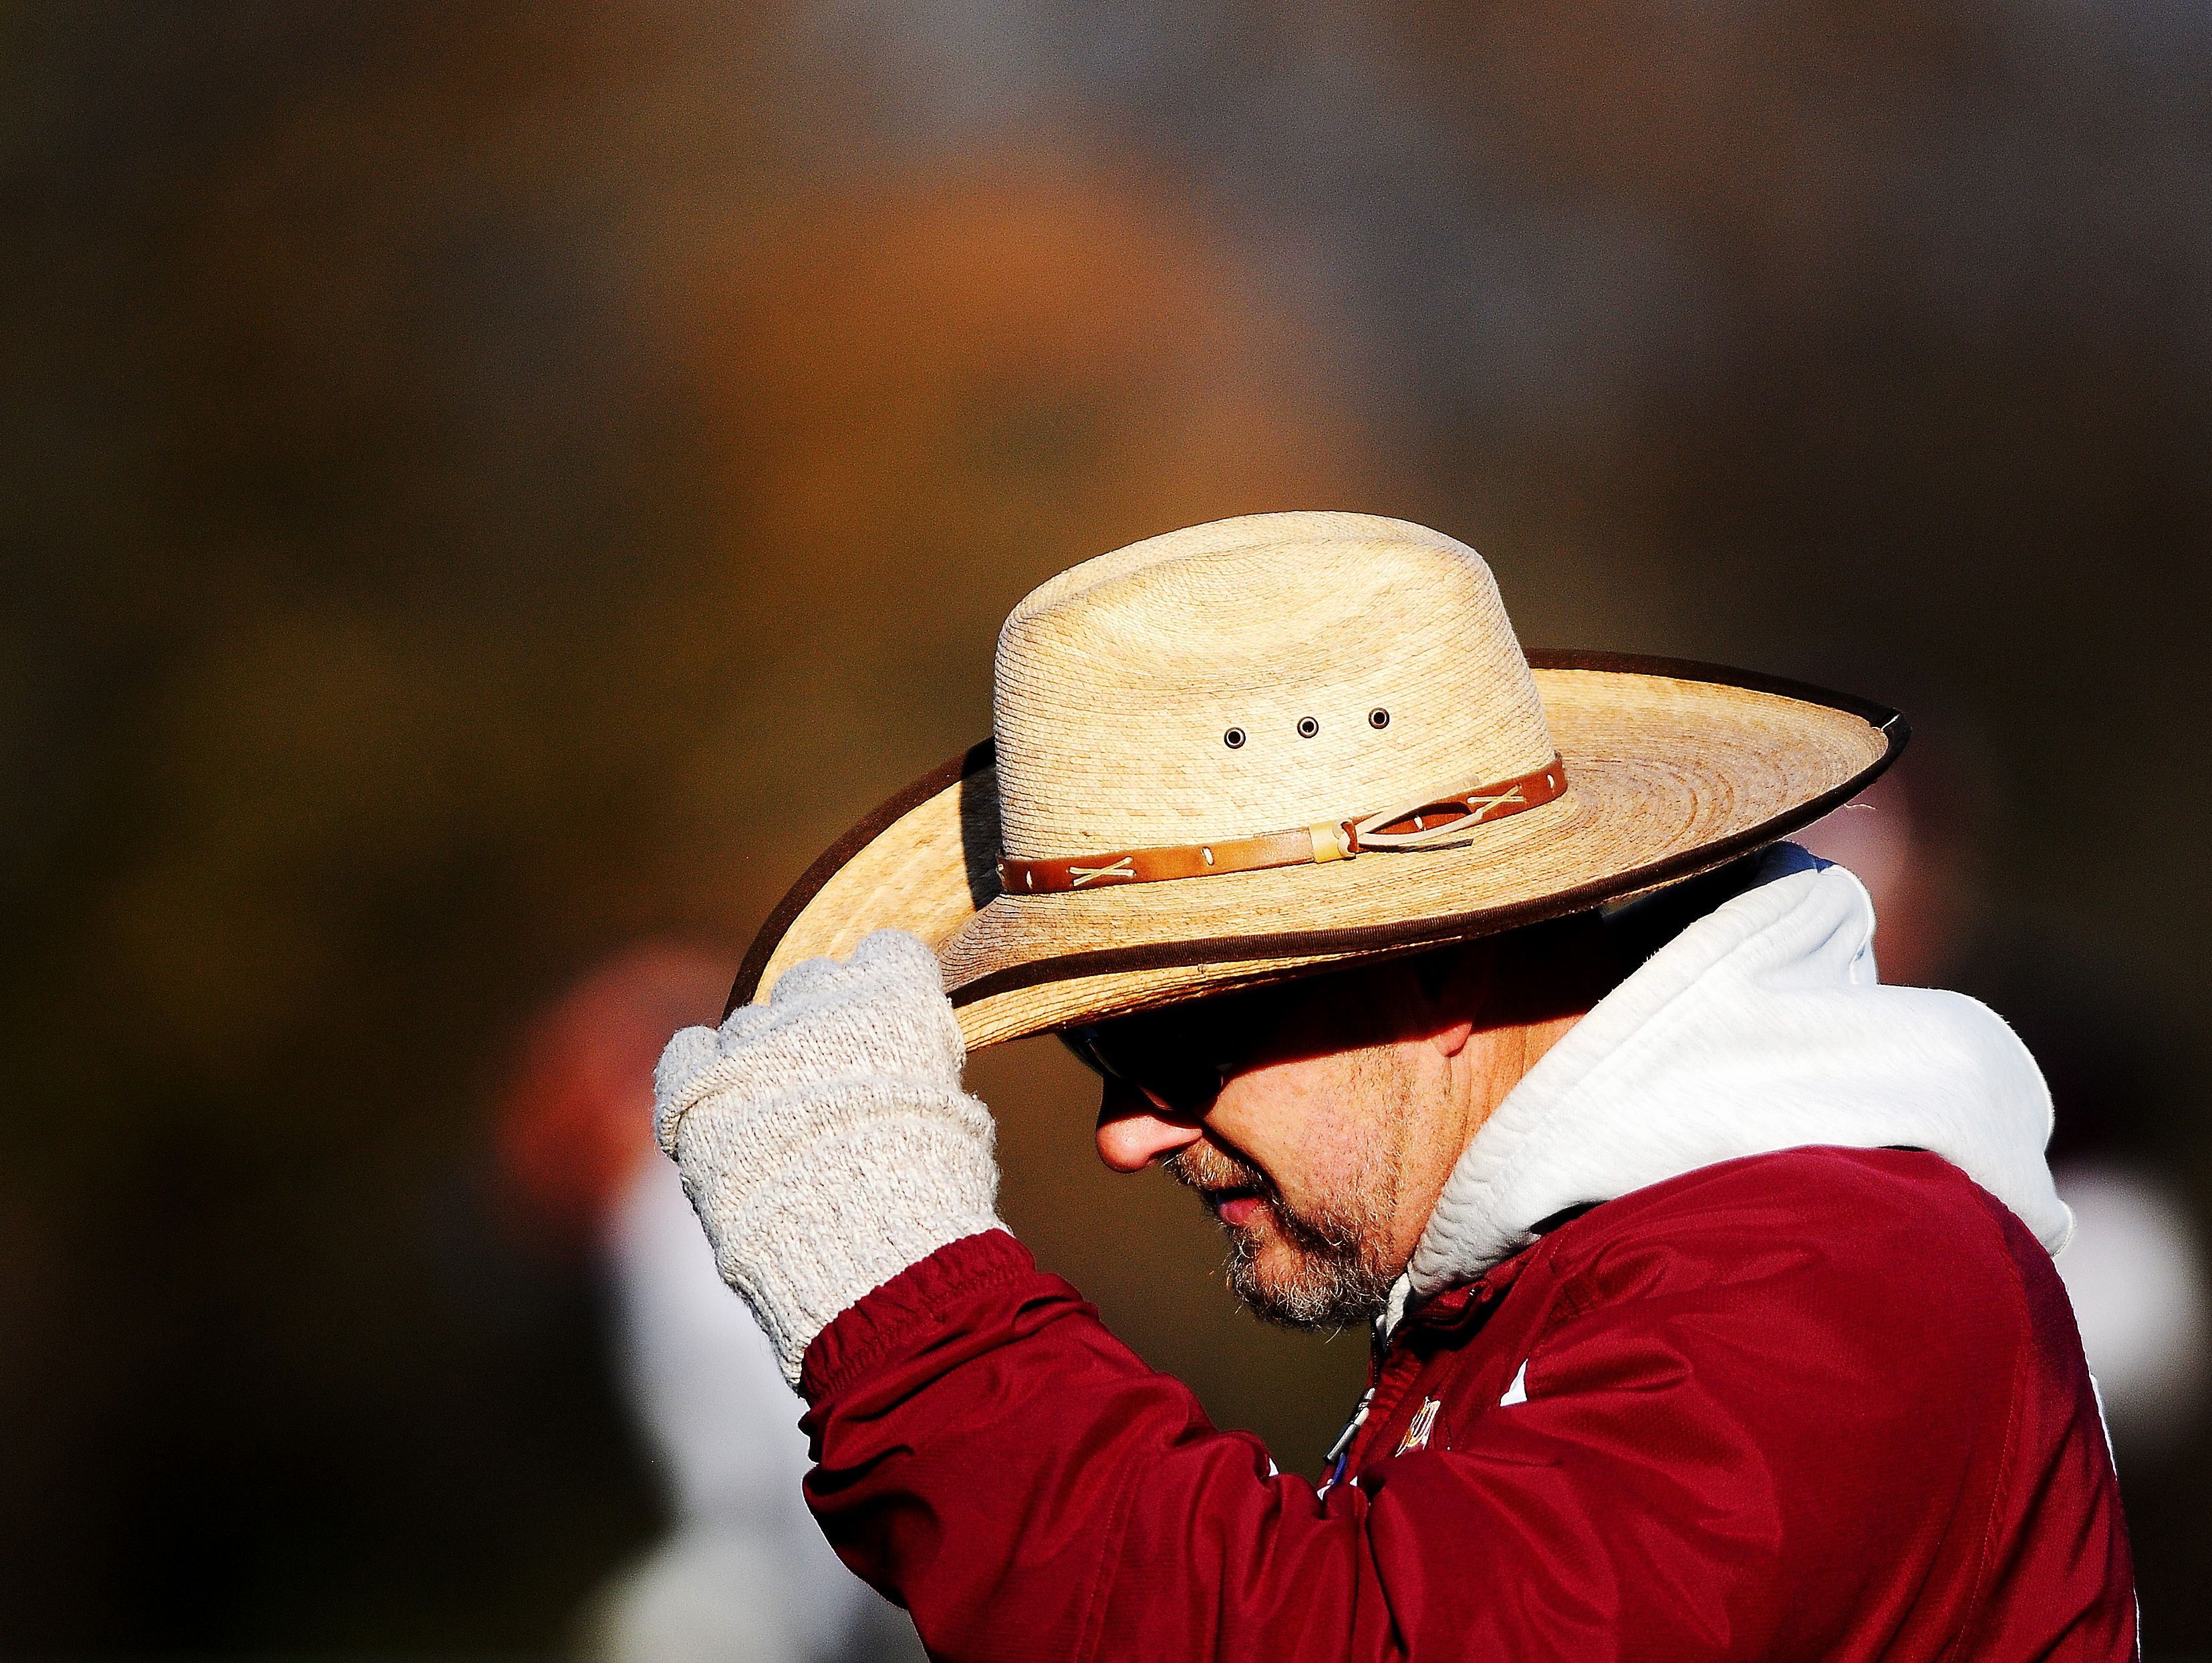 Madison coach Max Hodgen adjusts his hat during a game against Dell Rapids at Trojan Field in Madison, S.D., on Saturday, Nov. 9, 2013. (Joe Ahlquist / Argus Leader)